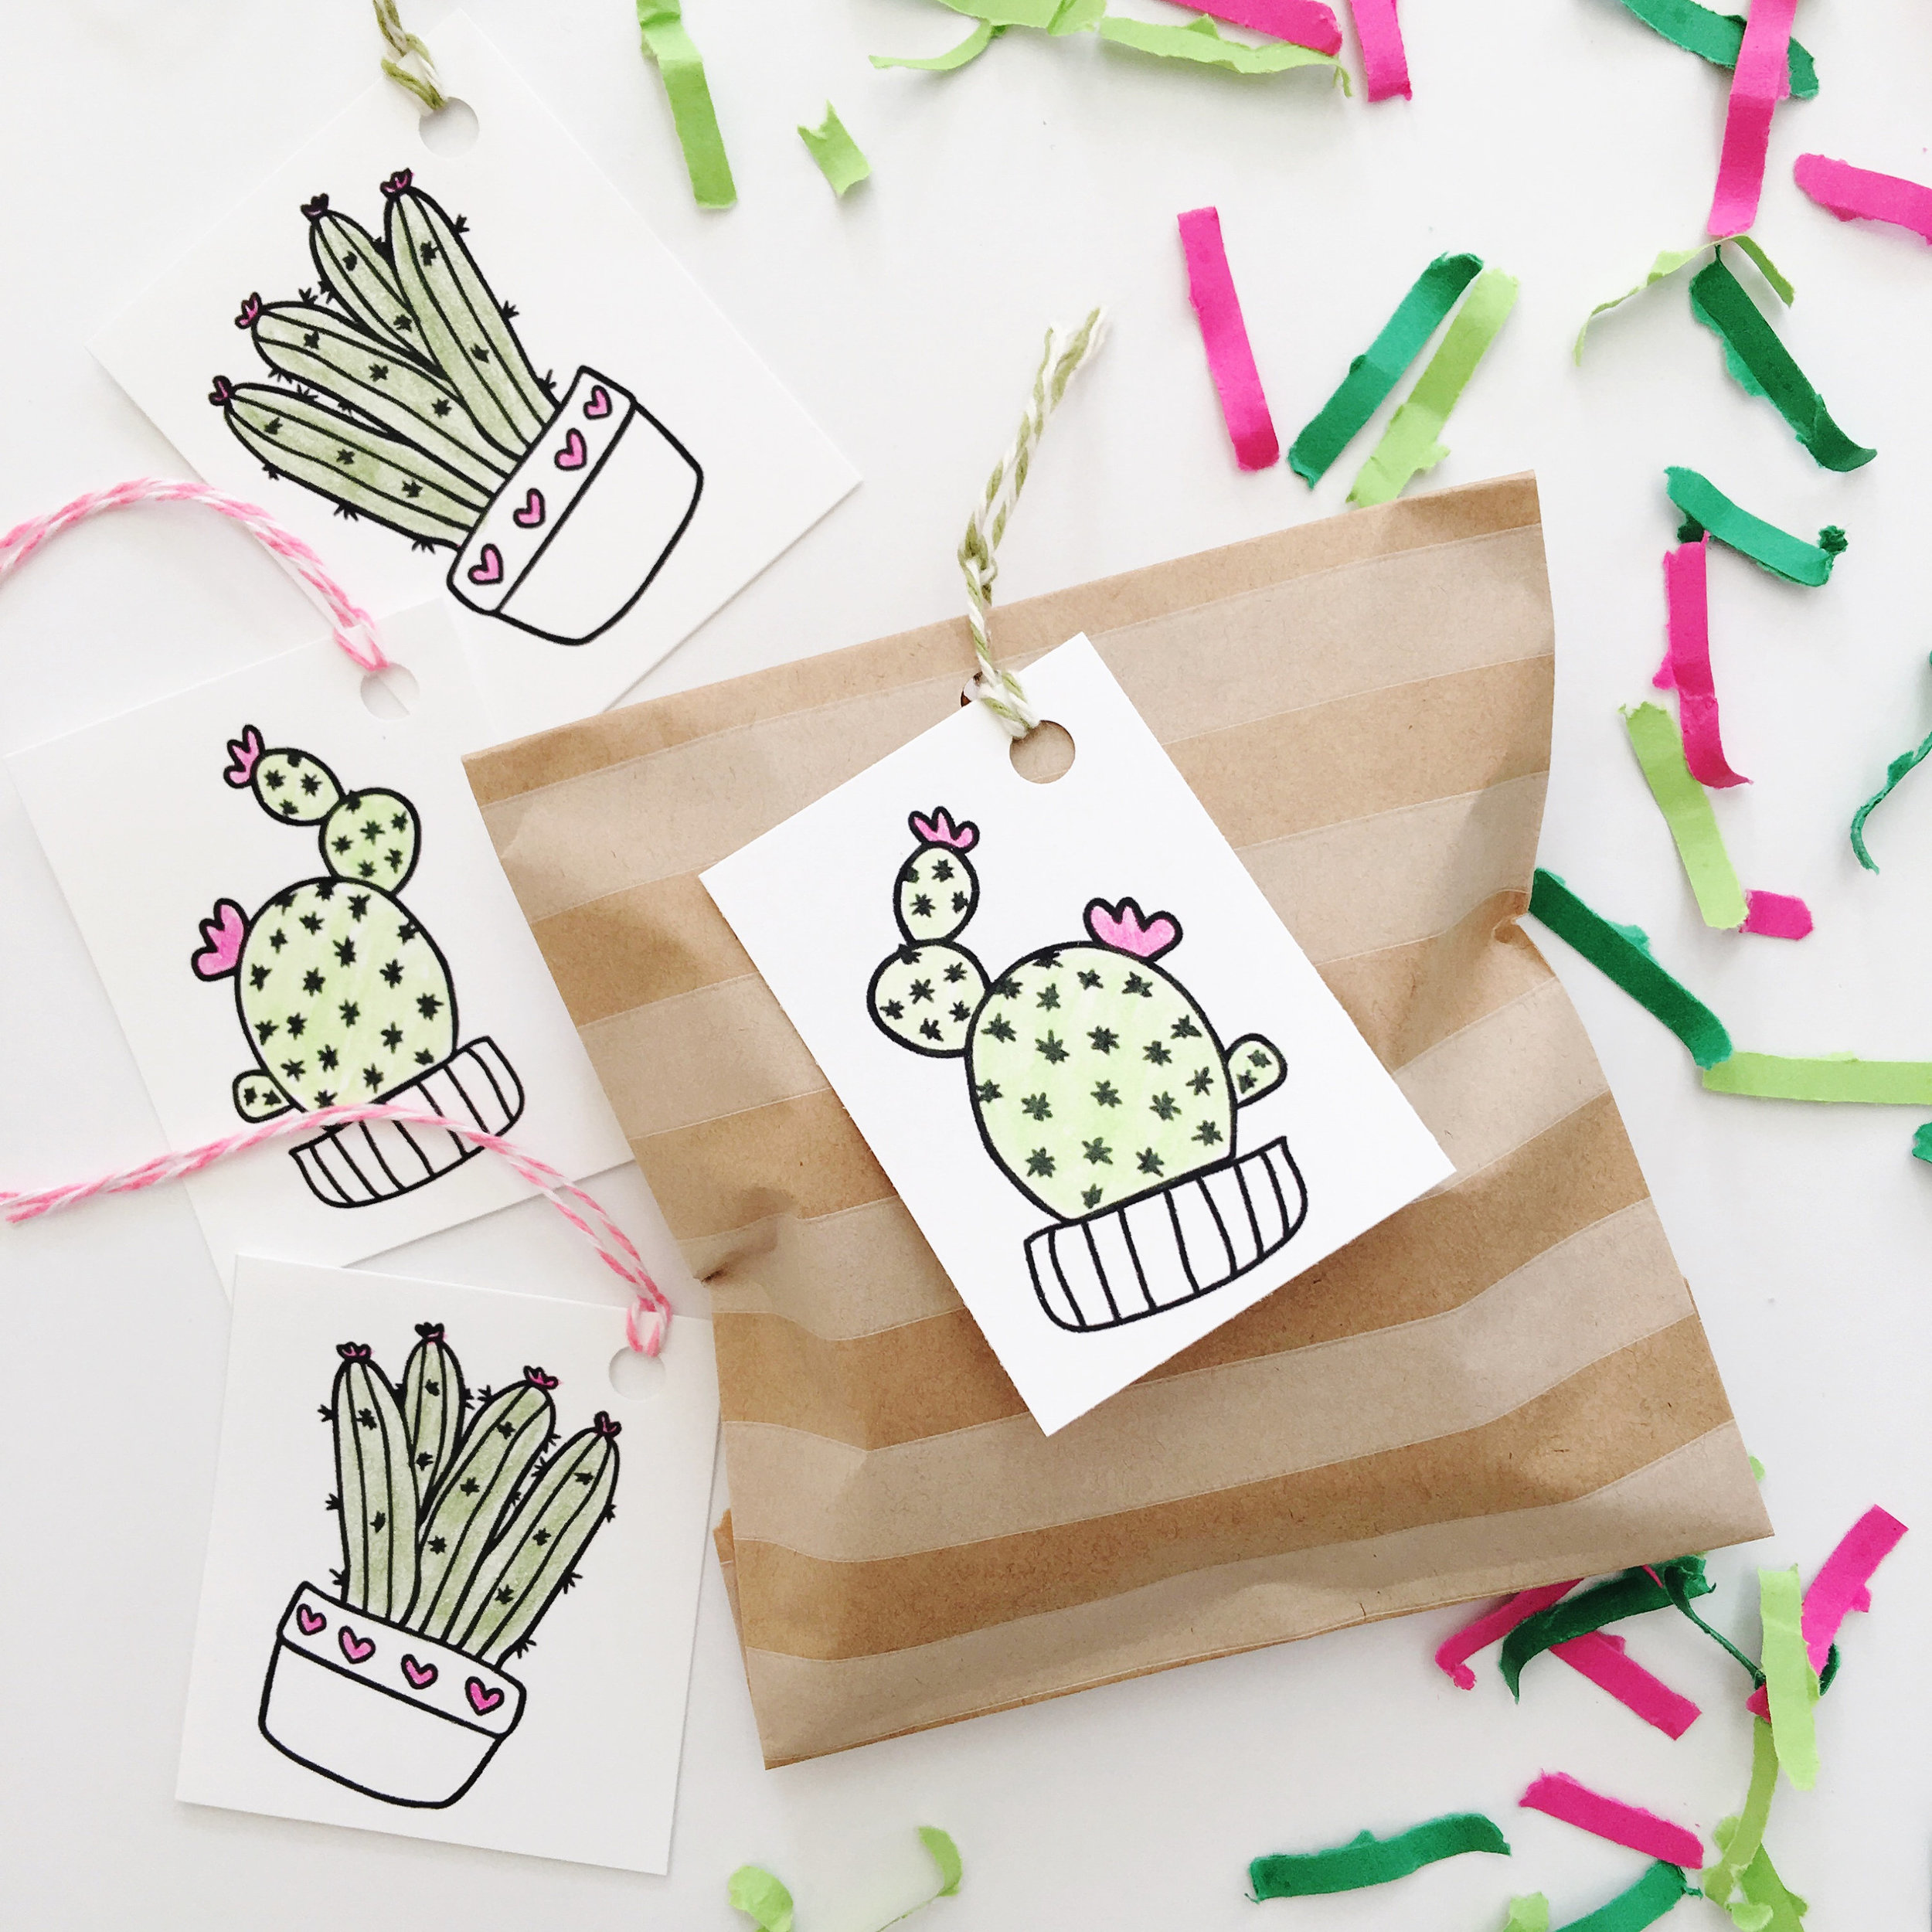 Cactus Confetti : 1 of 13 Cactus Wedding Ideas. This pink and green Festive Fetti confetti is the perfect way to present gifts for your bridesmaids. Simply tuck their gift in a box, add a little confetti, wrap the surprise and add one of the included cactus gift tags. You can even add the confetti to a mini cactus piñata. See more on www.BrendasWeddingBlog.com